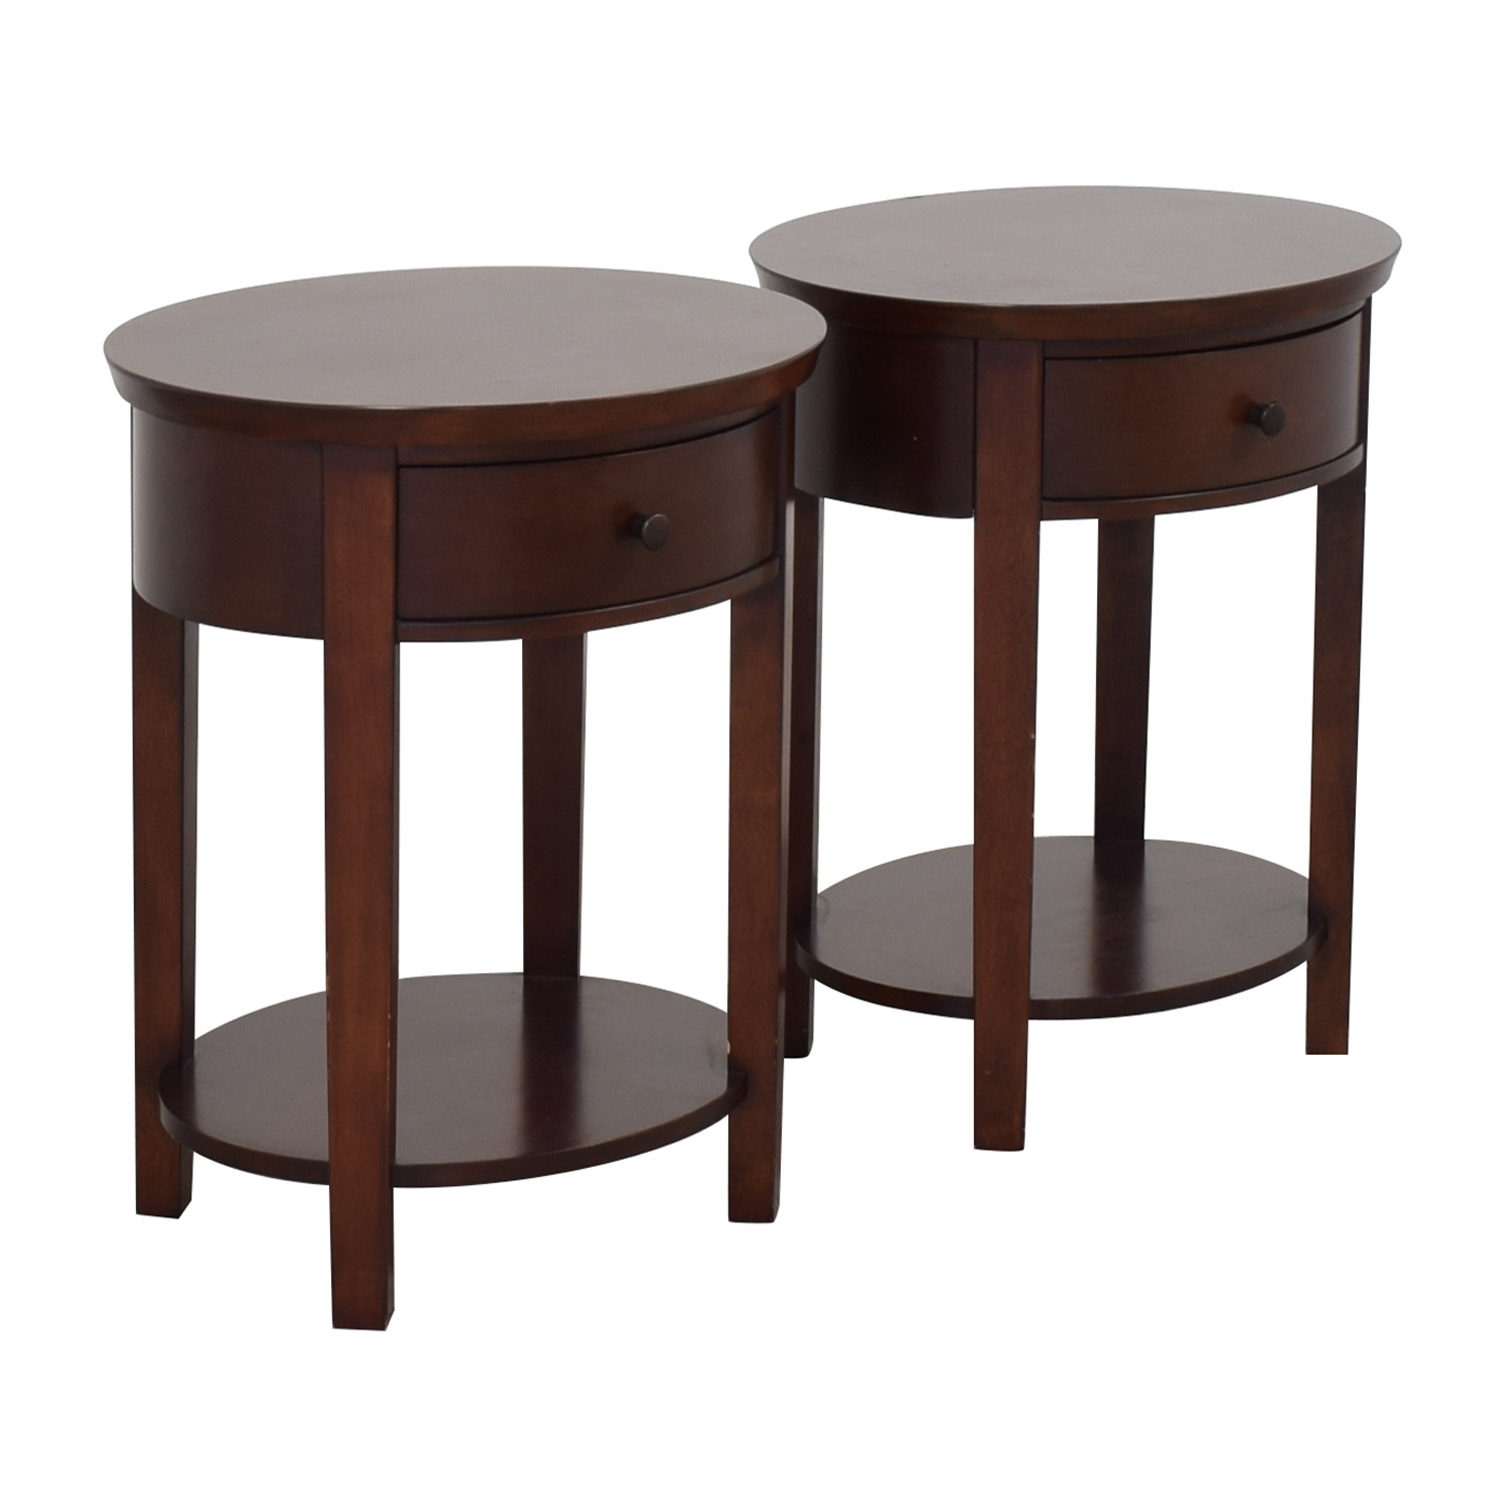 Pottery Barn Valencia Oval Bedside Tables / End Tables